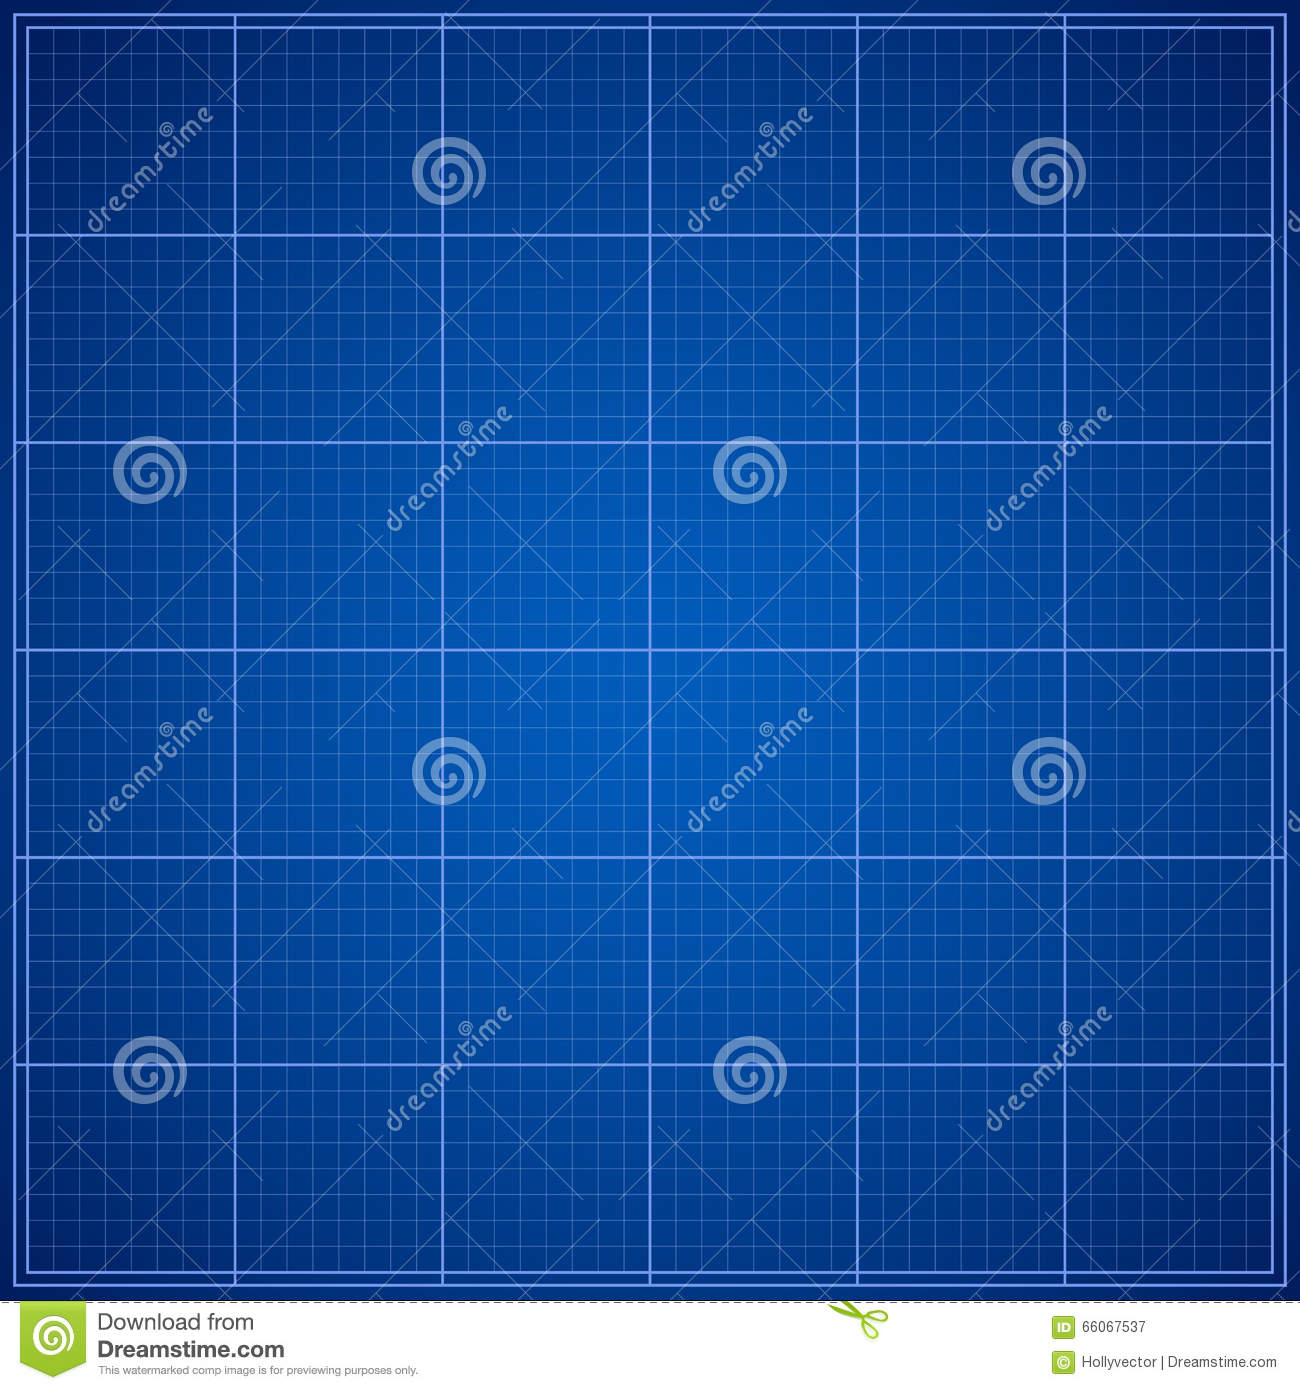 Blueprint old background vector illustration cartoondealer blueprint old background vector illustration cartoondealer 49307834 malvernweather Gallery